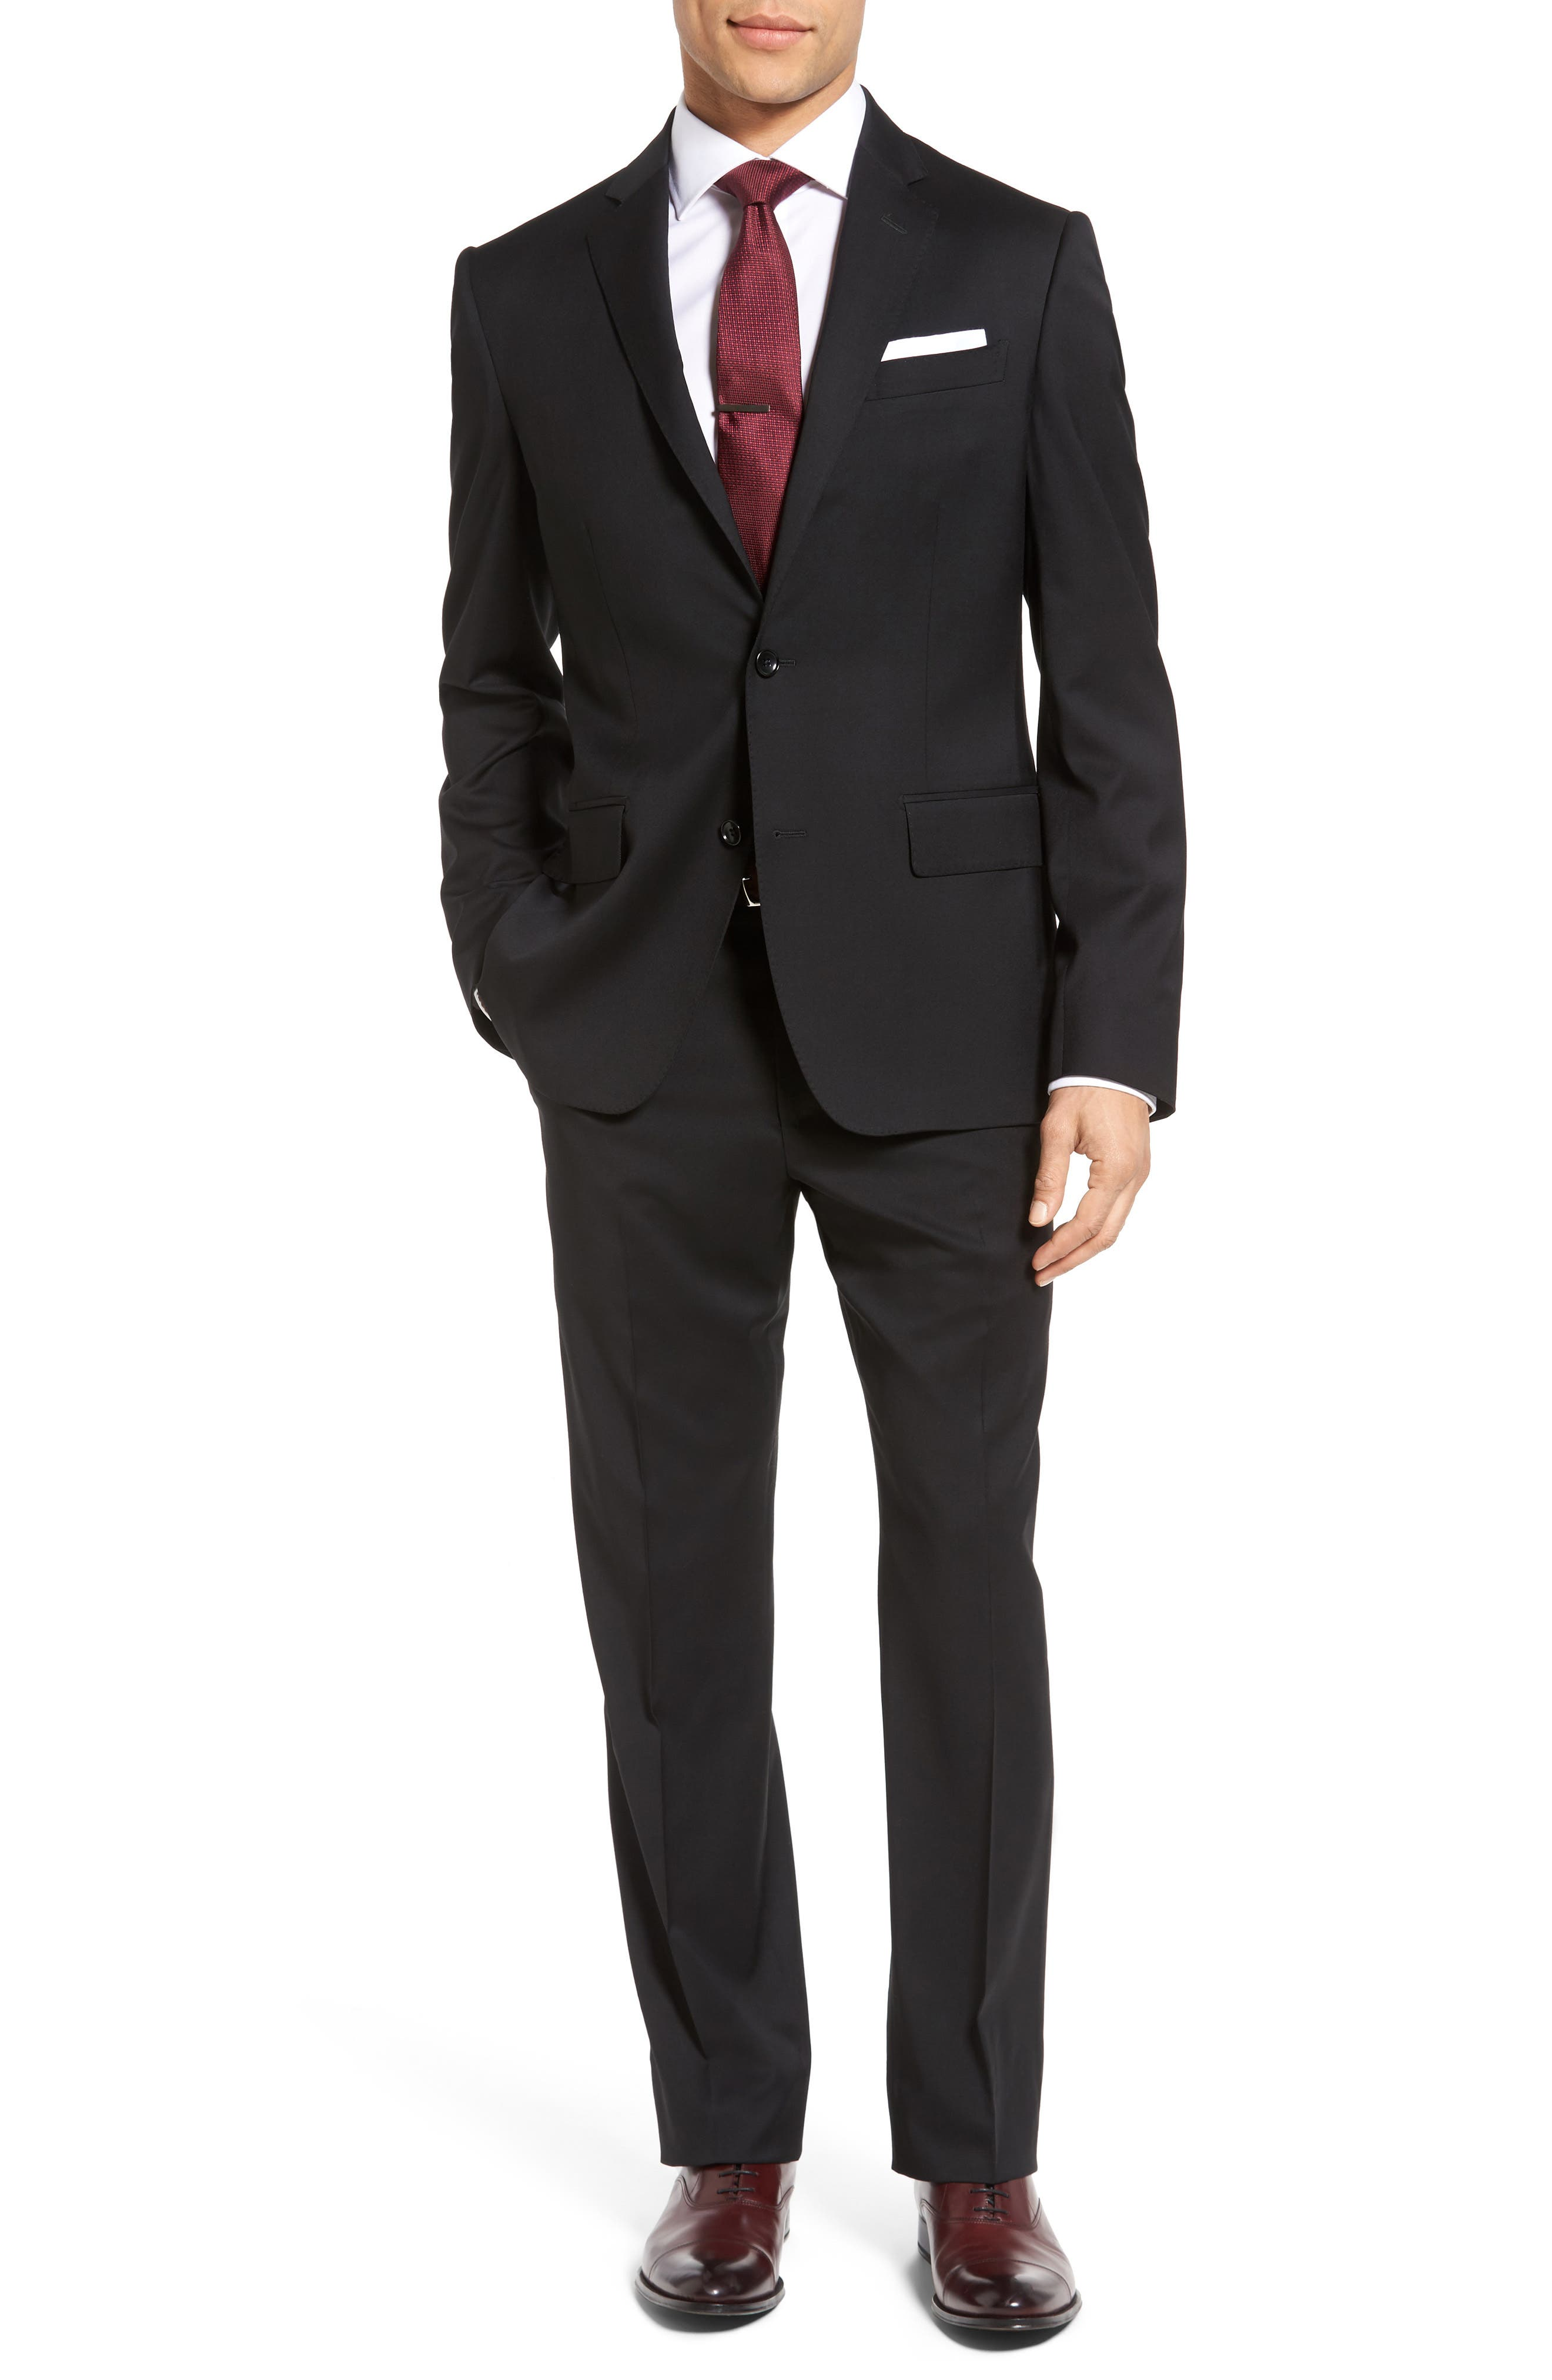 Alternate Image 1 Selected - John W. Nordstrom® Classic Fit Solid Wool Suit